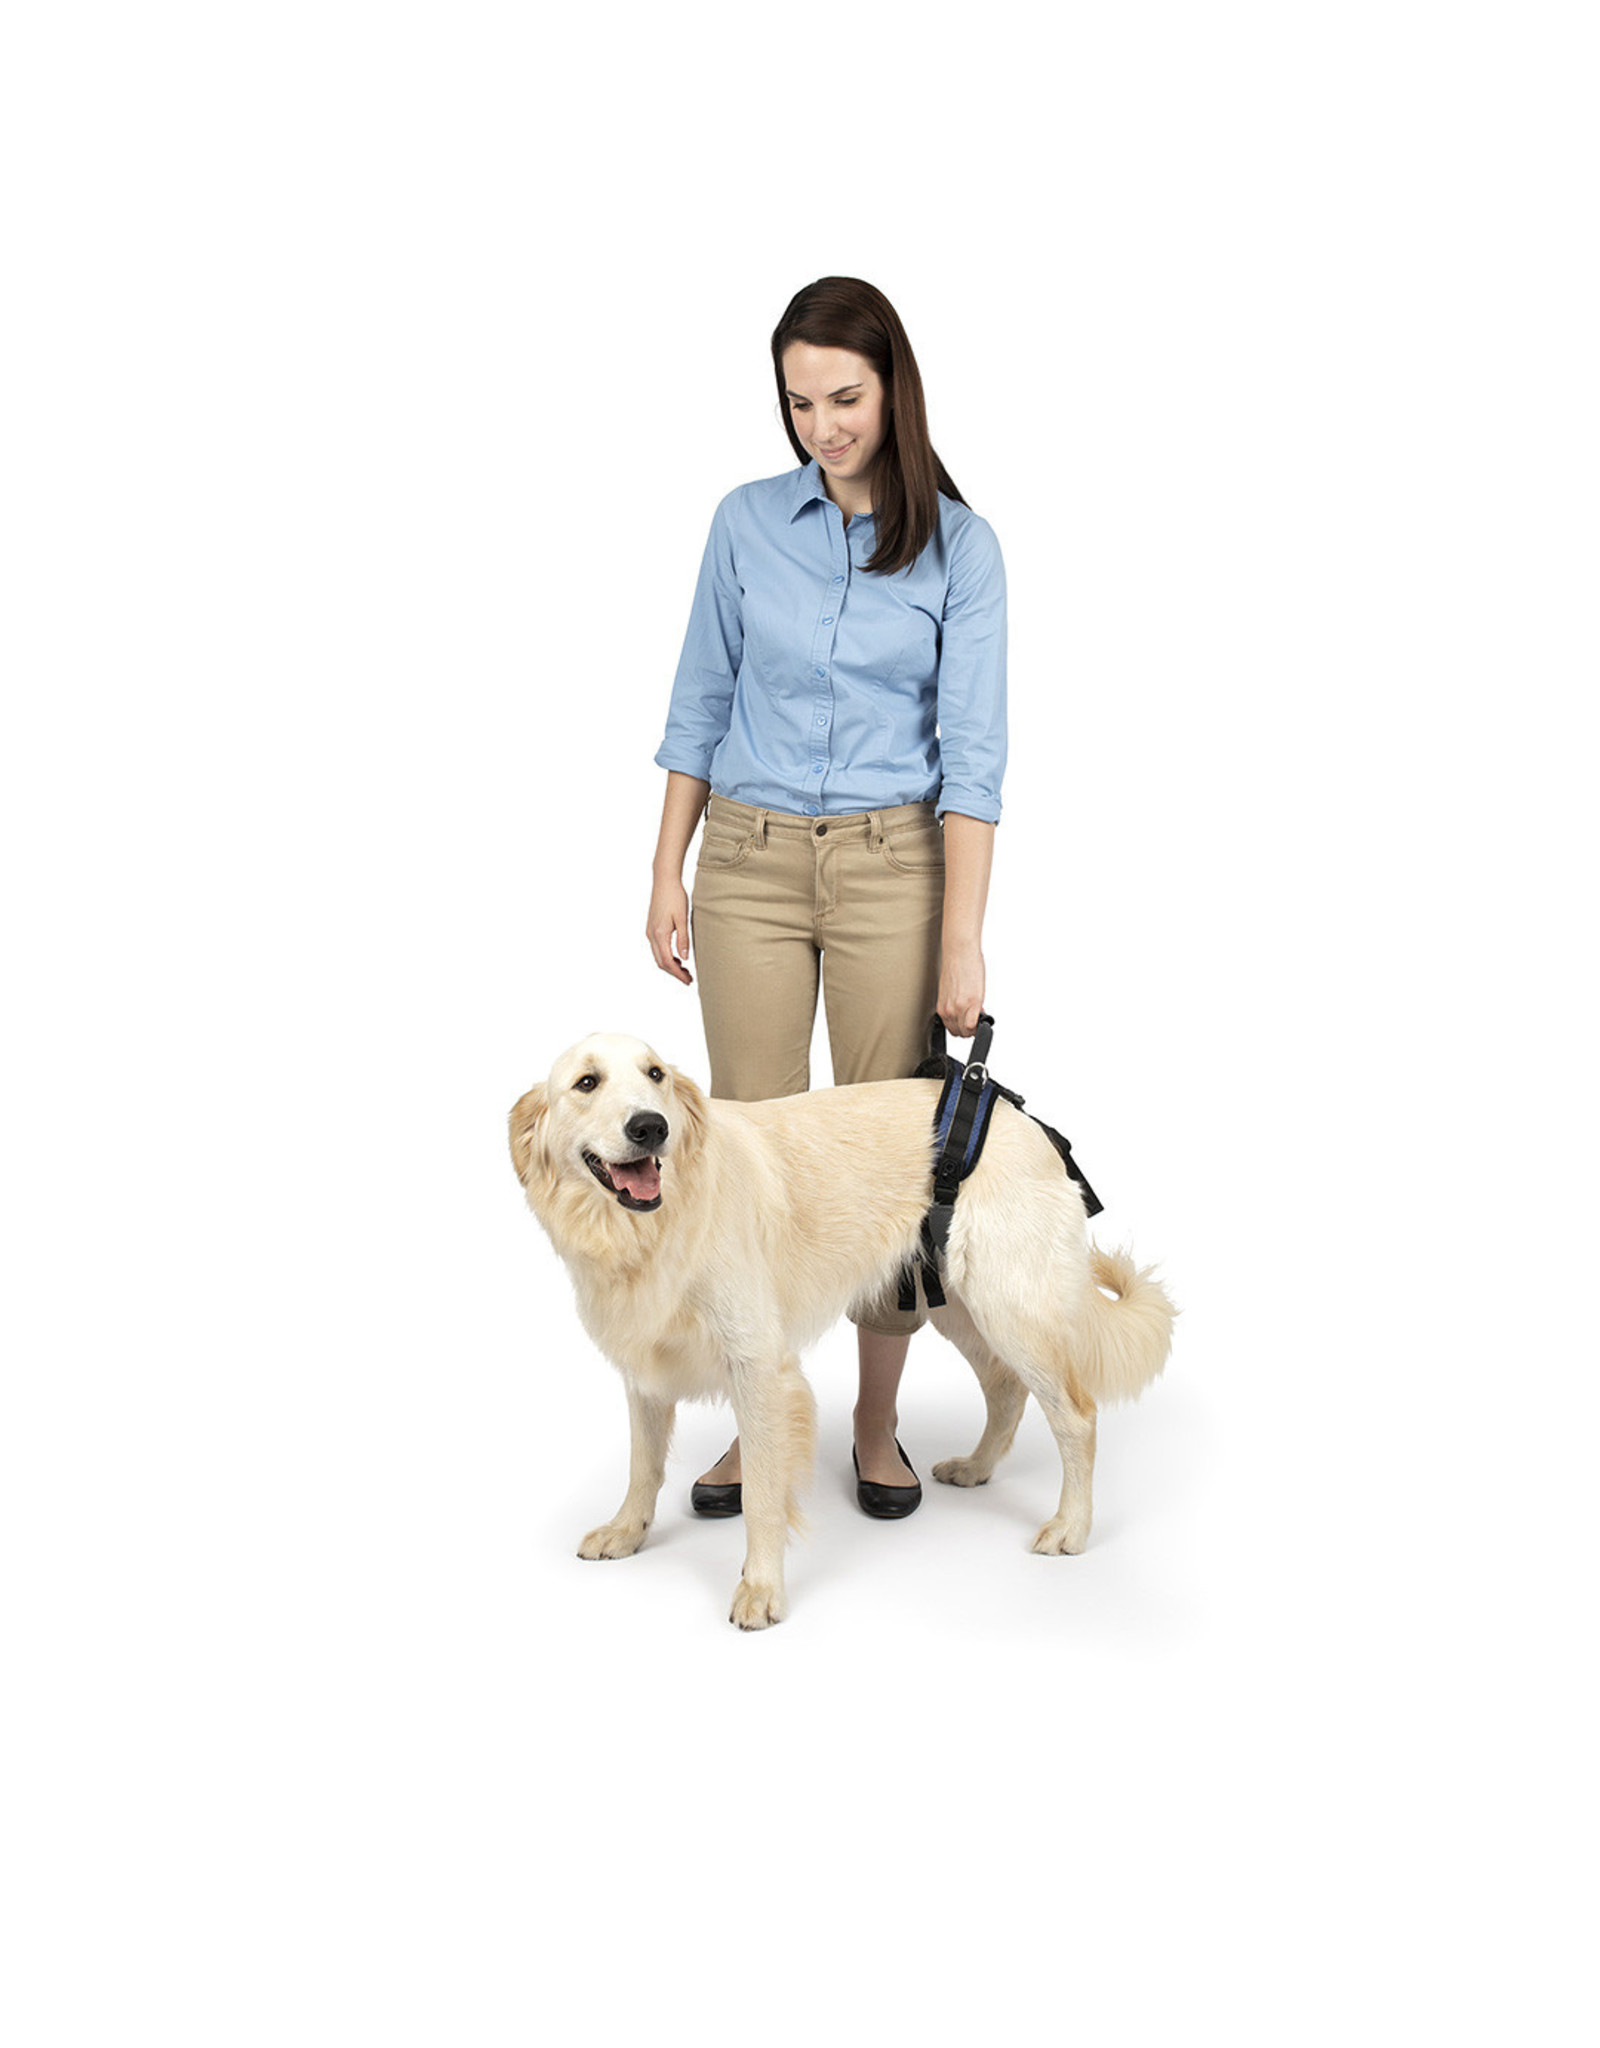 PetSafe CareLift Rear Support Harness for Disabled and Senior Dogs